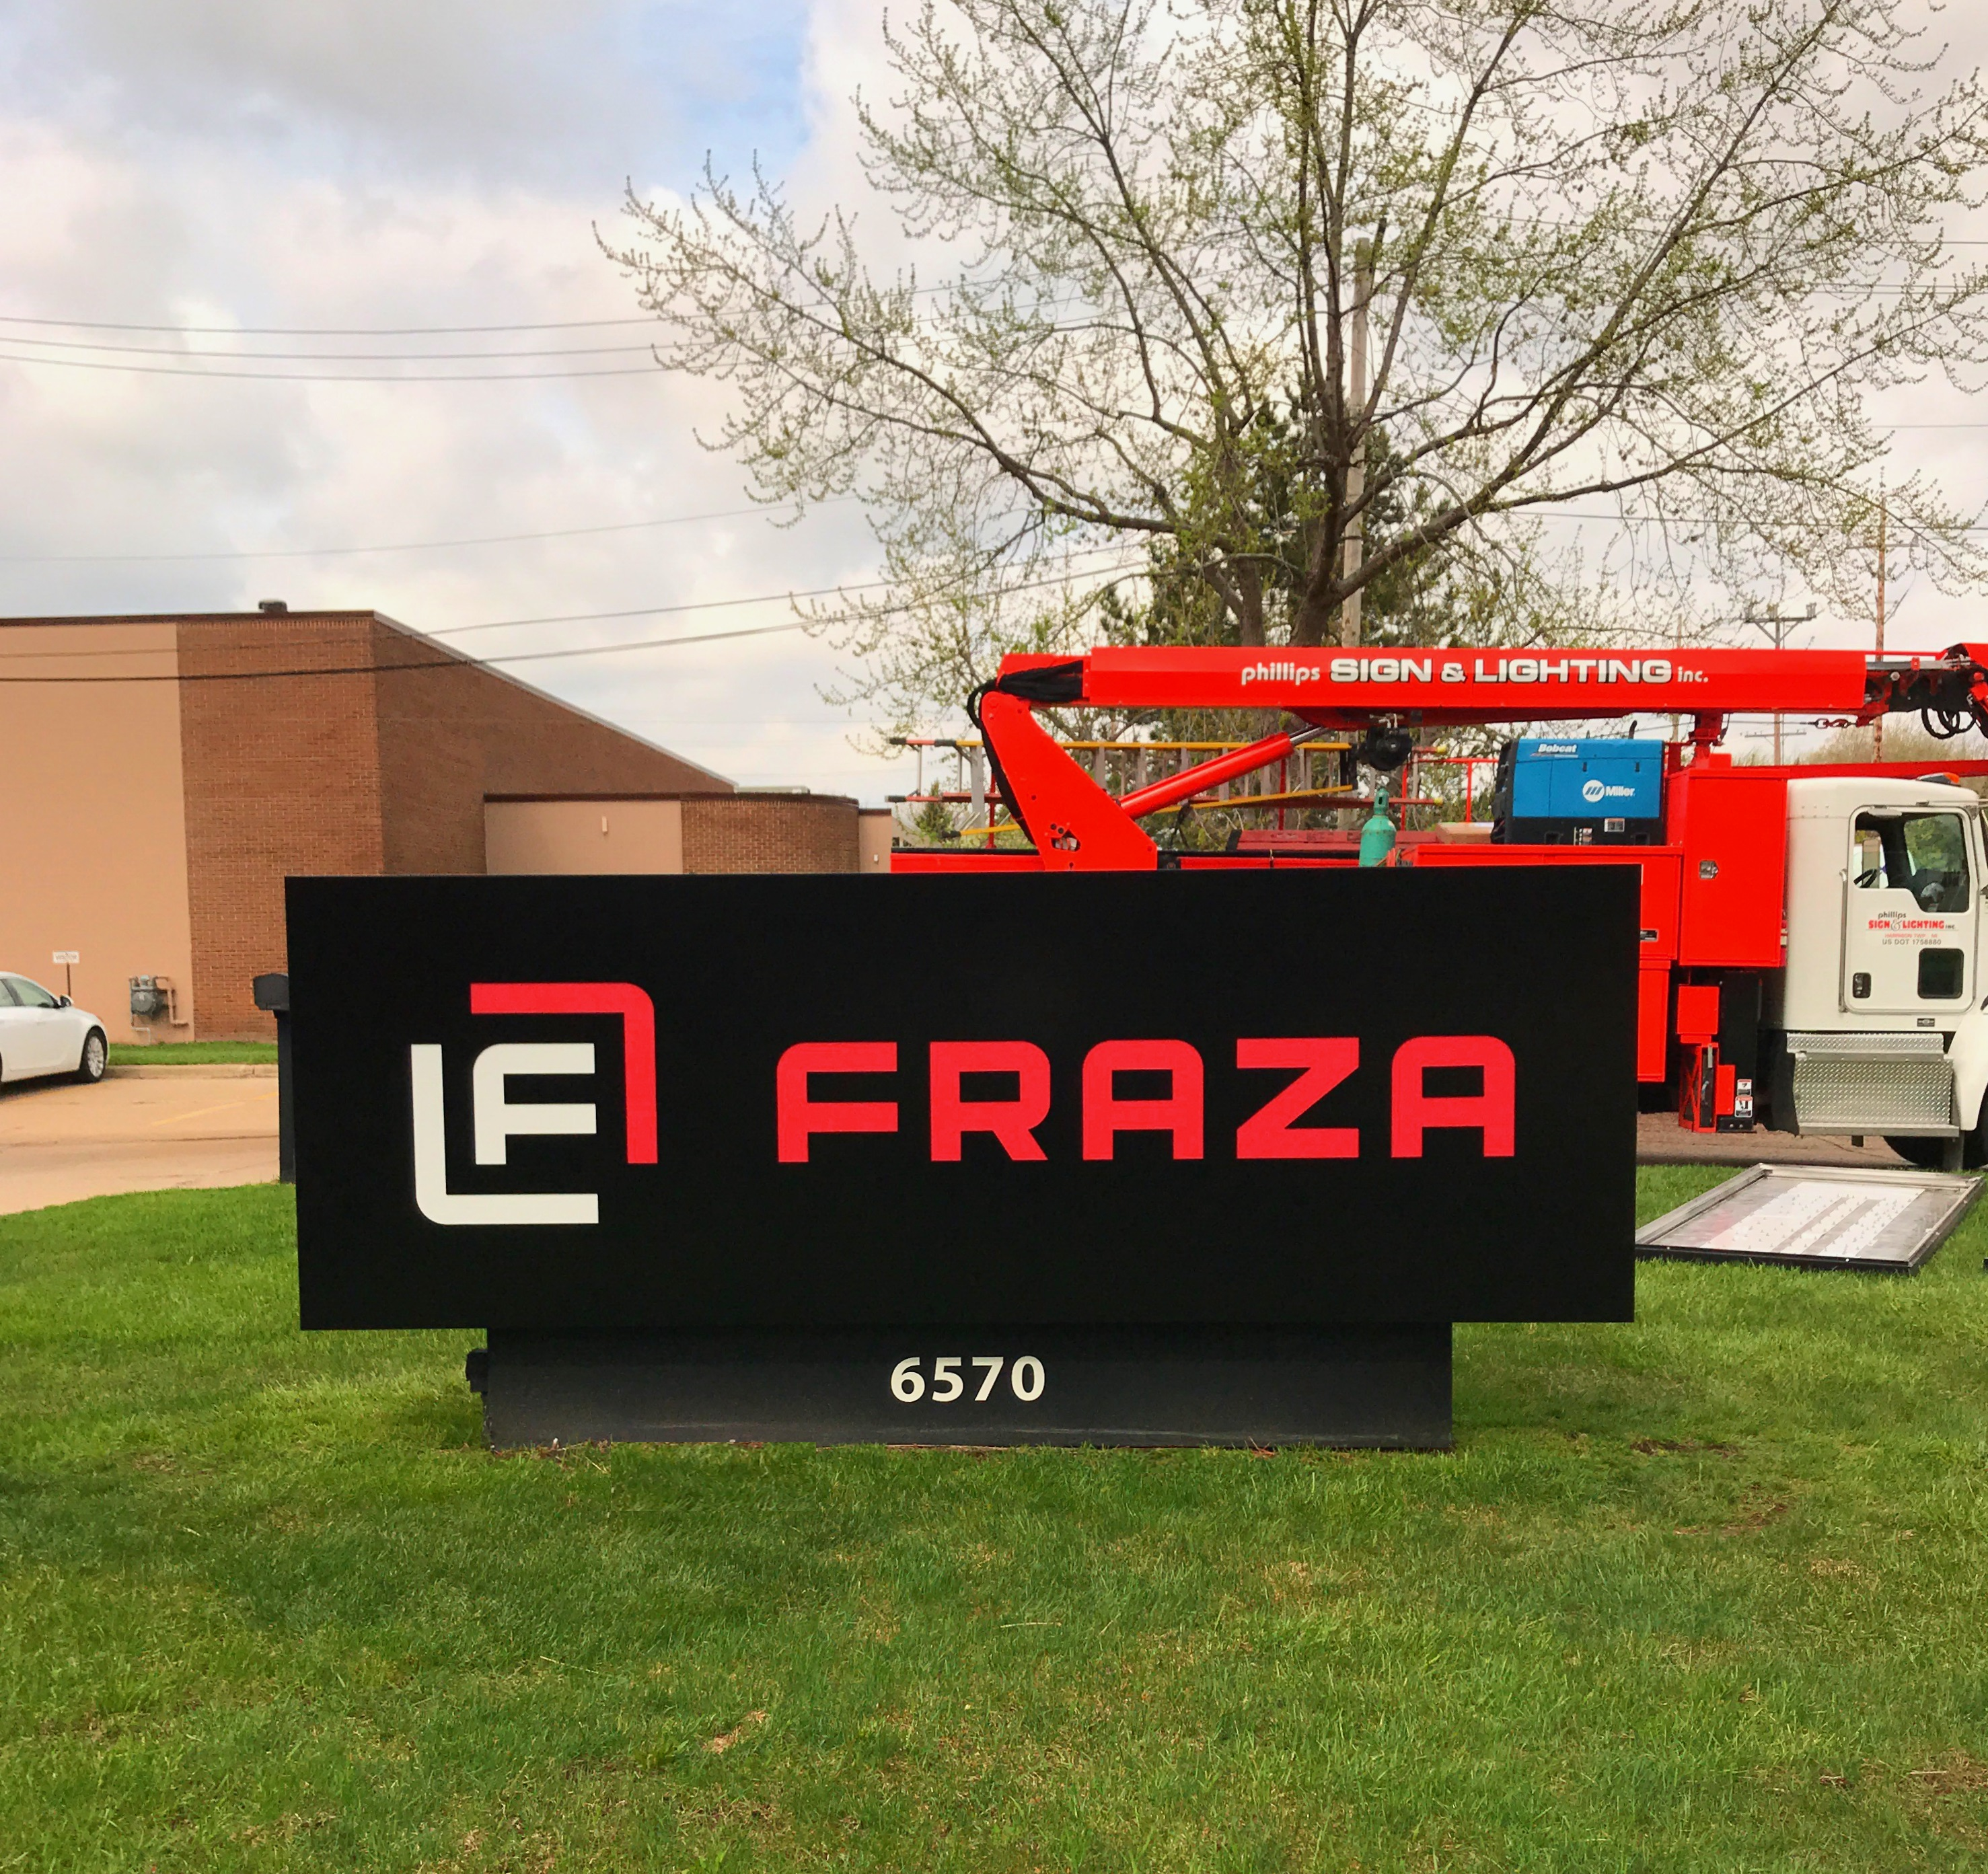 Fraza - Sterling Heights, MI